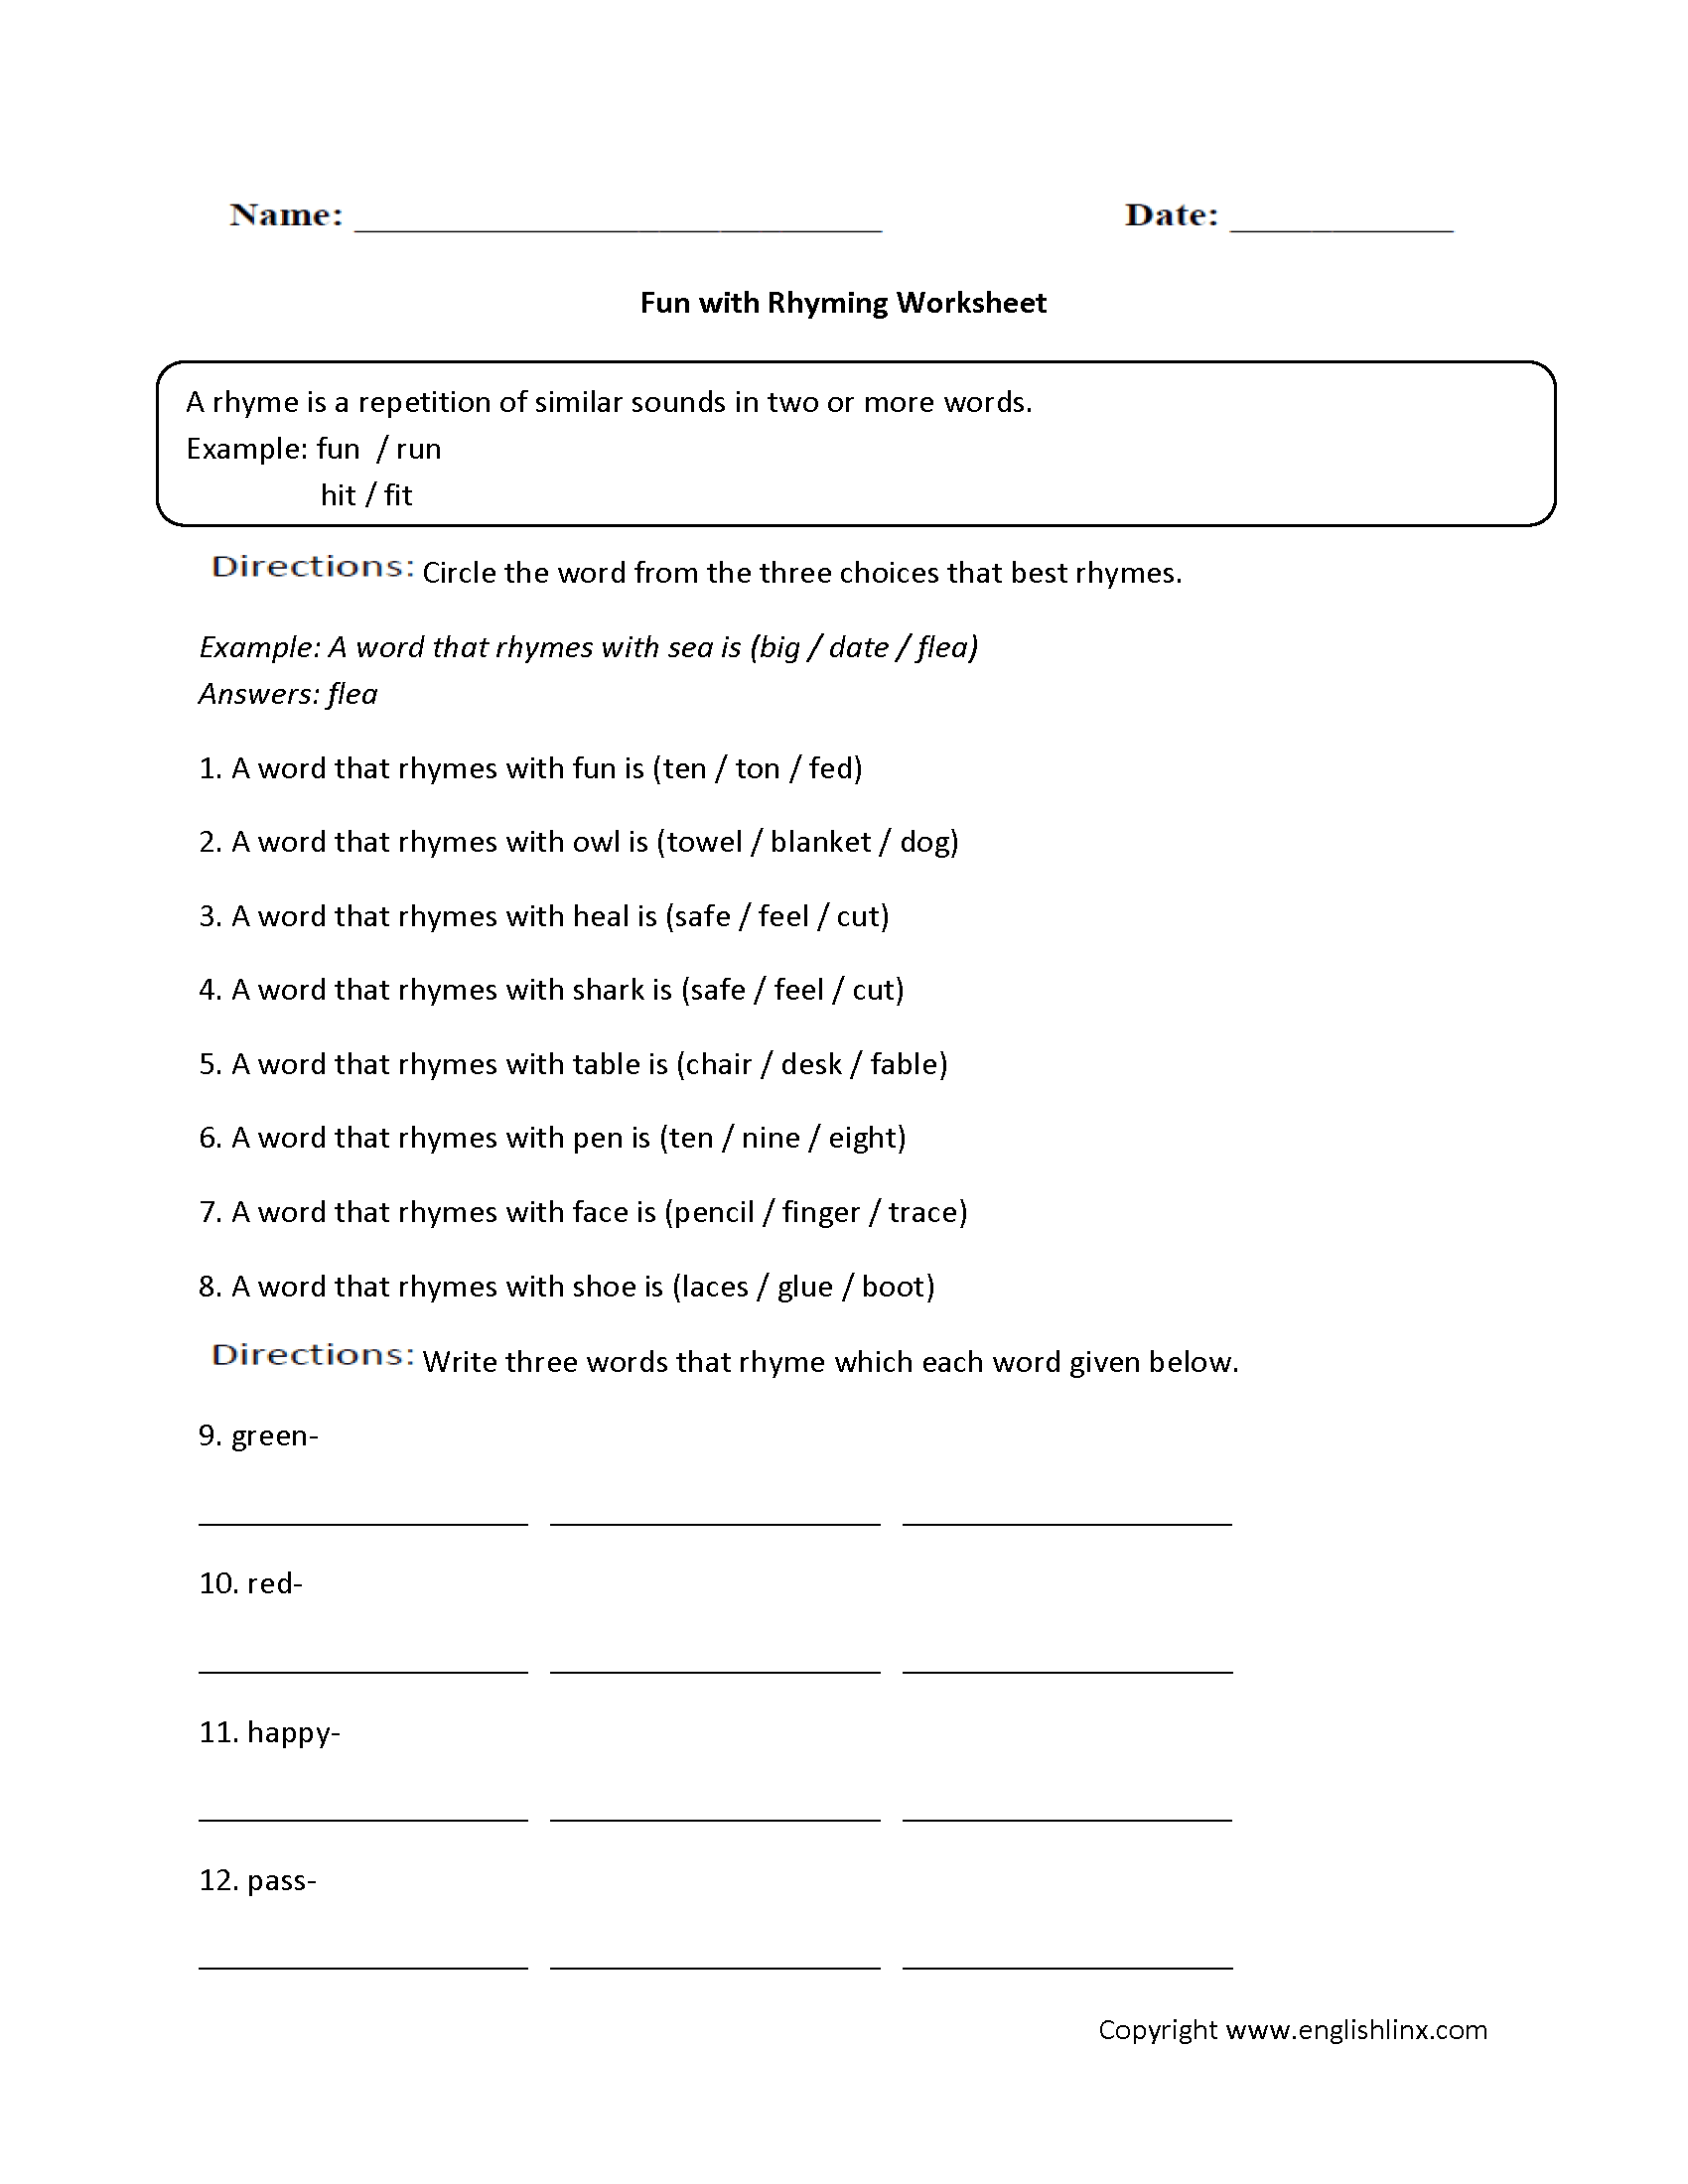 Free Worksheet Free Rhyming Worksheets englishlinx com rhyming worksheets grades 9 12 worksheets